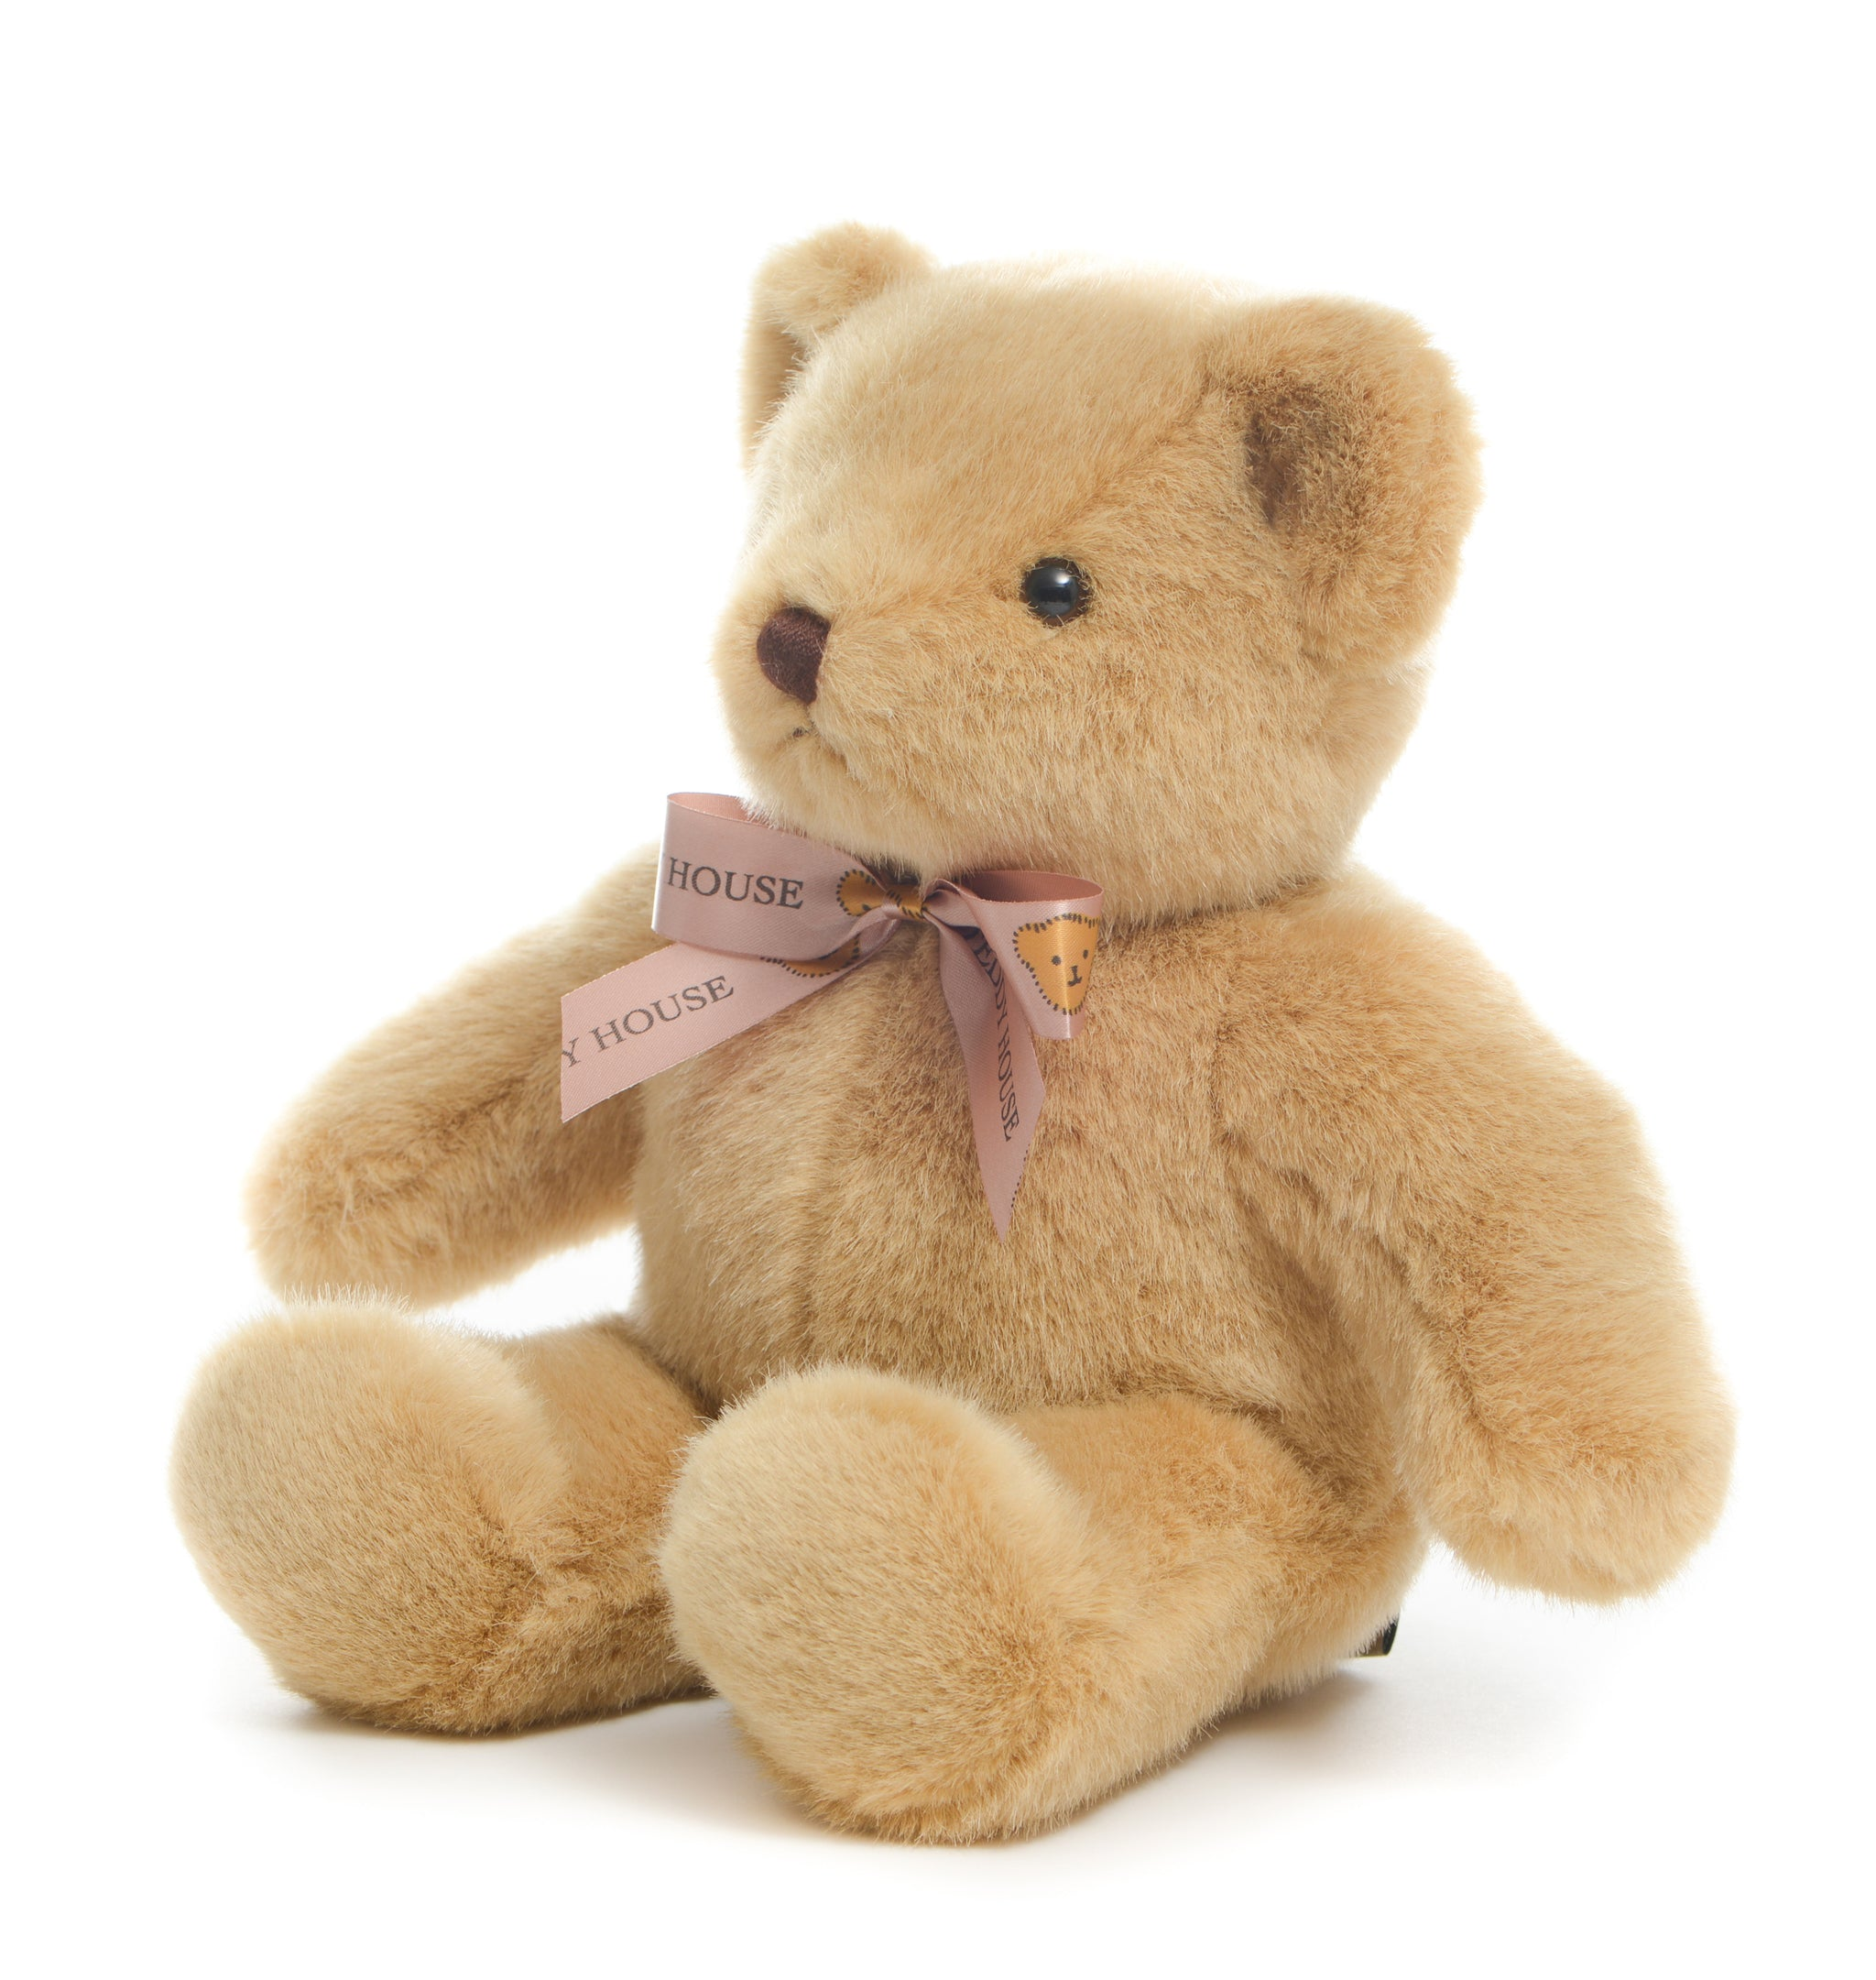 TEDDY HOUSE BONEKA TEDDY BEAR TAMBO BEAR 18 INCH